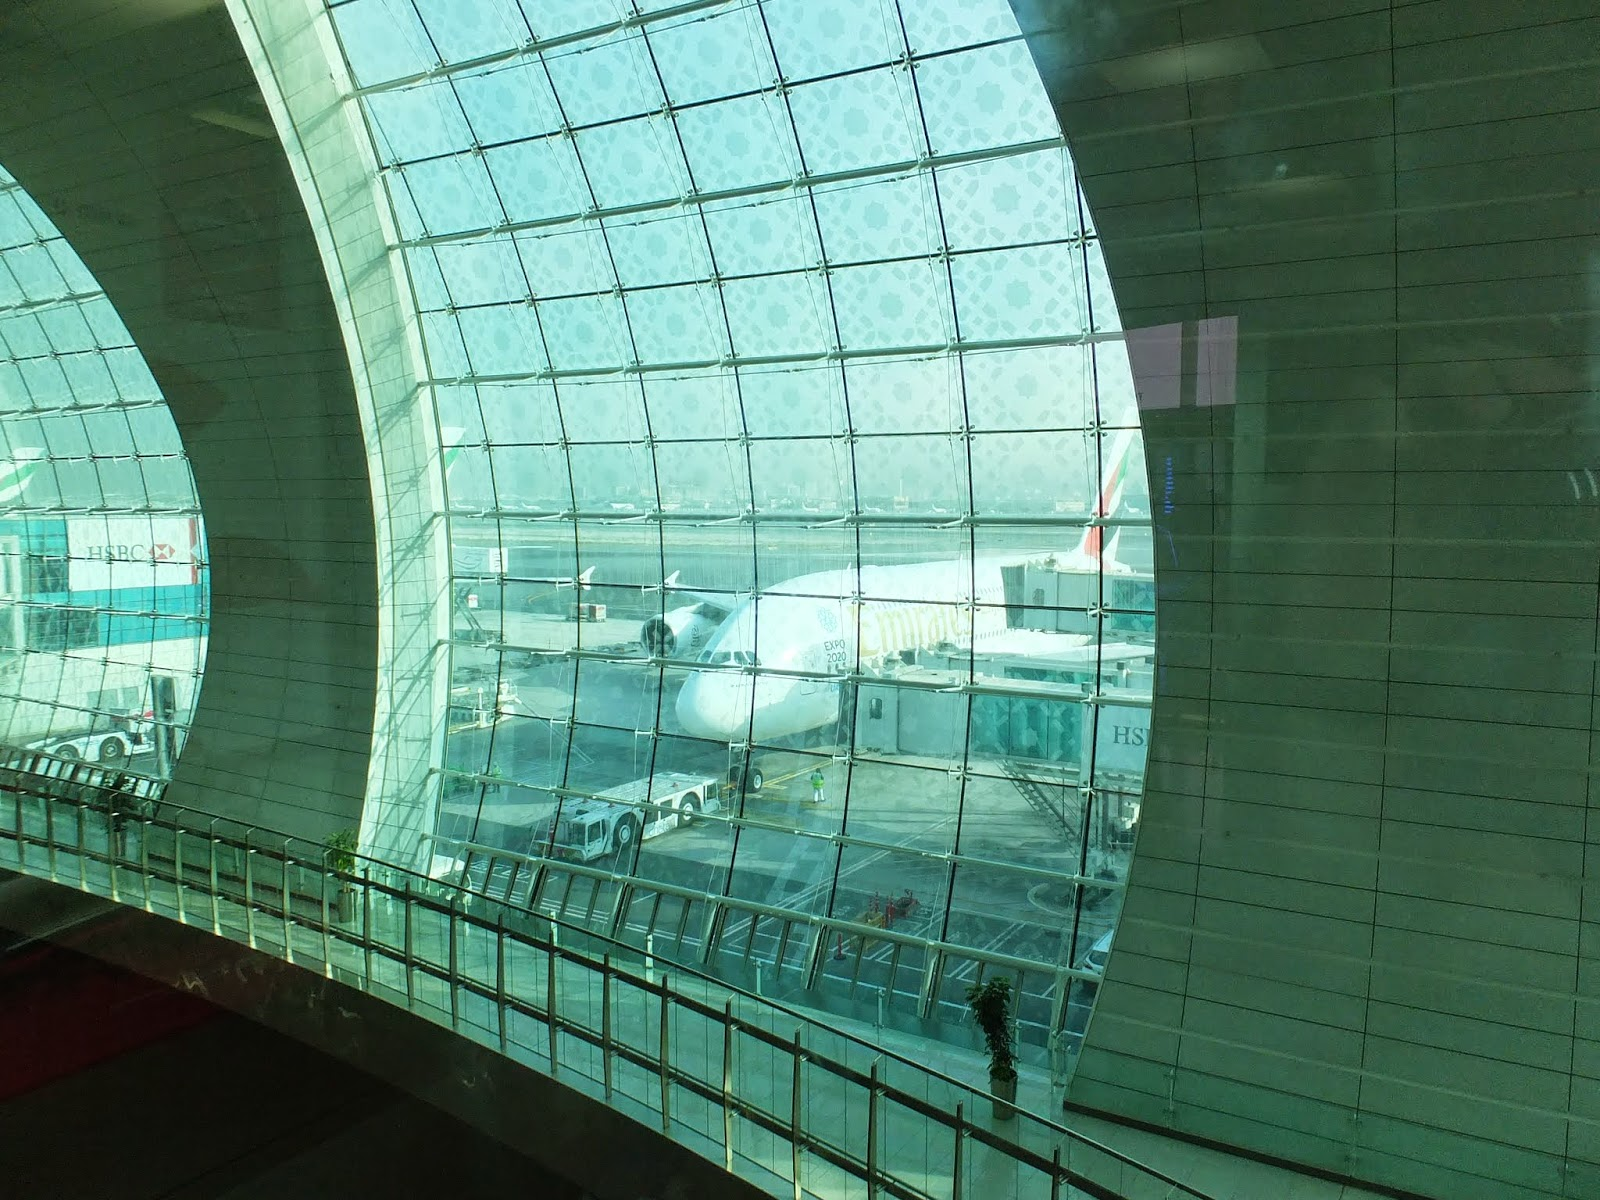 dubai-airport ドバイ国際空港2 with A380